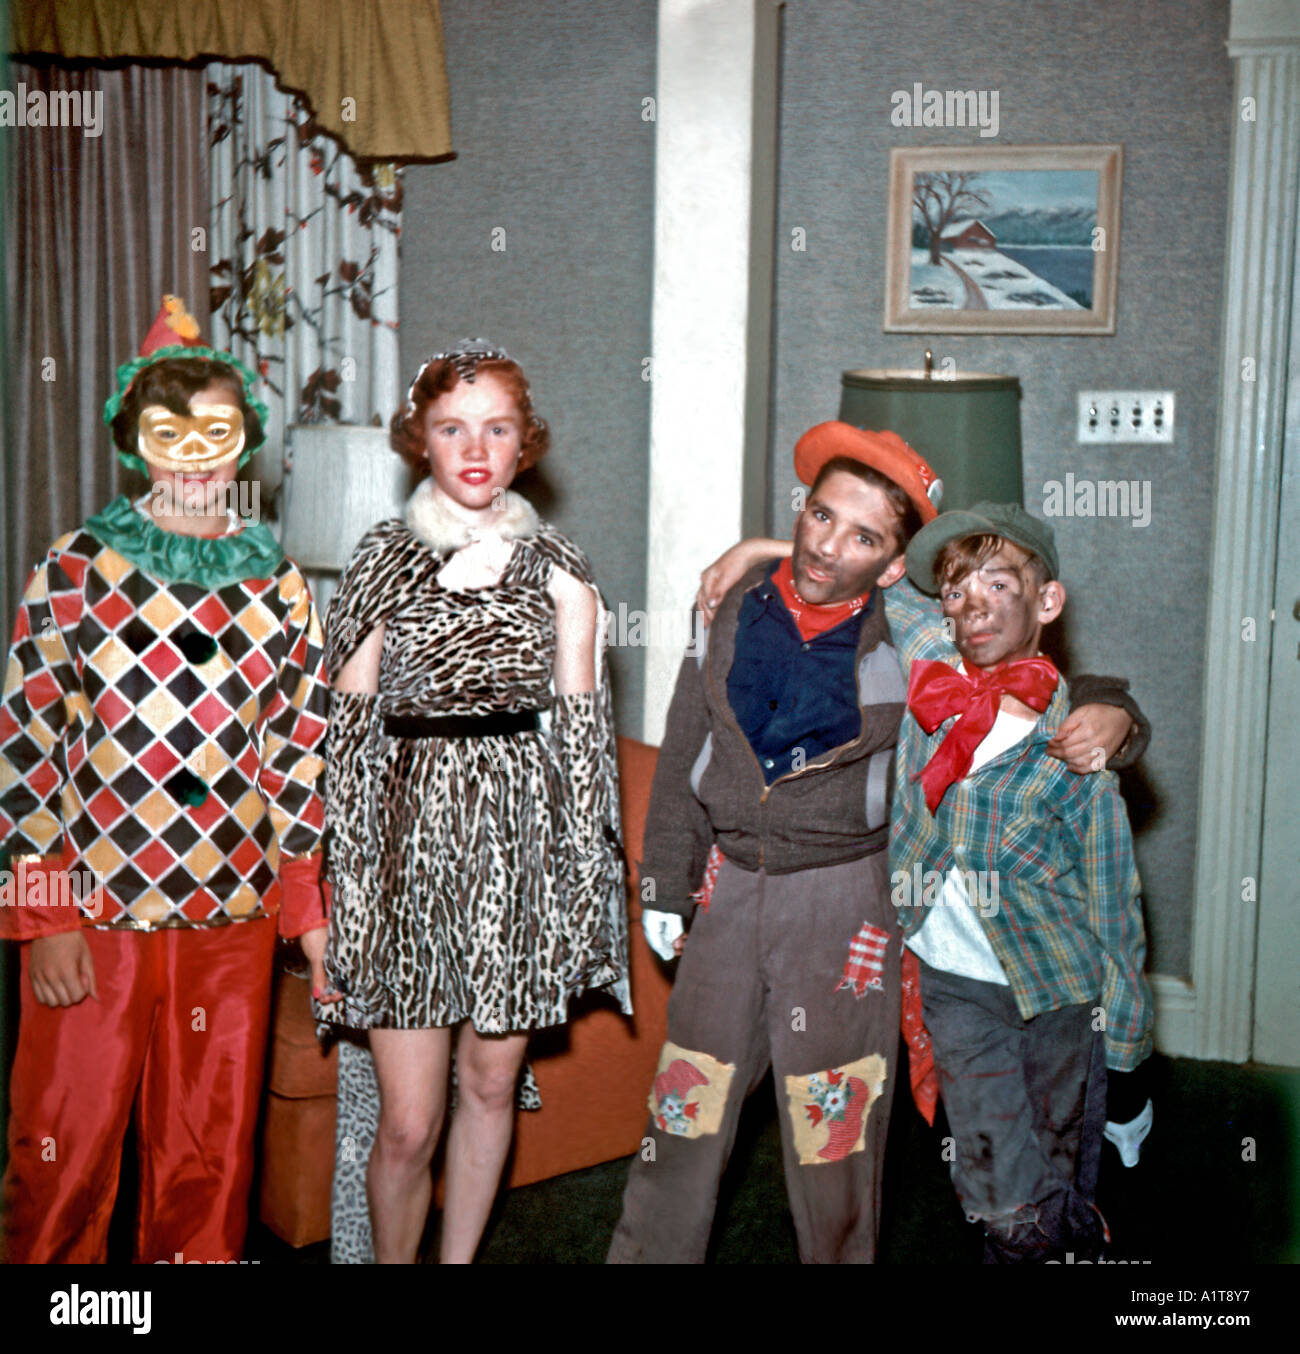 USA 1950's Halloween Group Portrait, with Young Teens Dressed up Vintage Photo, Family Photo, retro images, - Stock Image